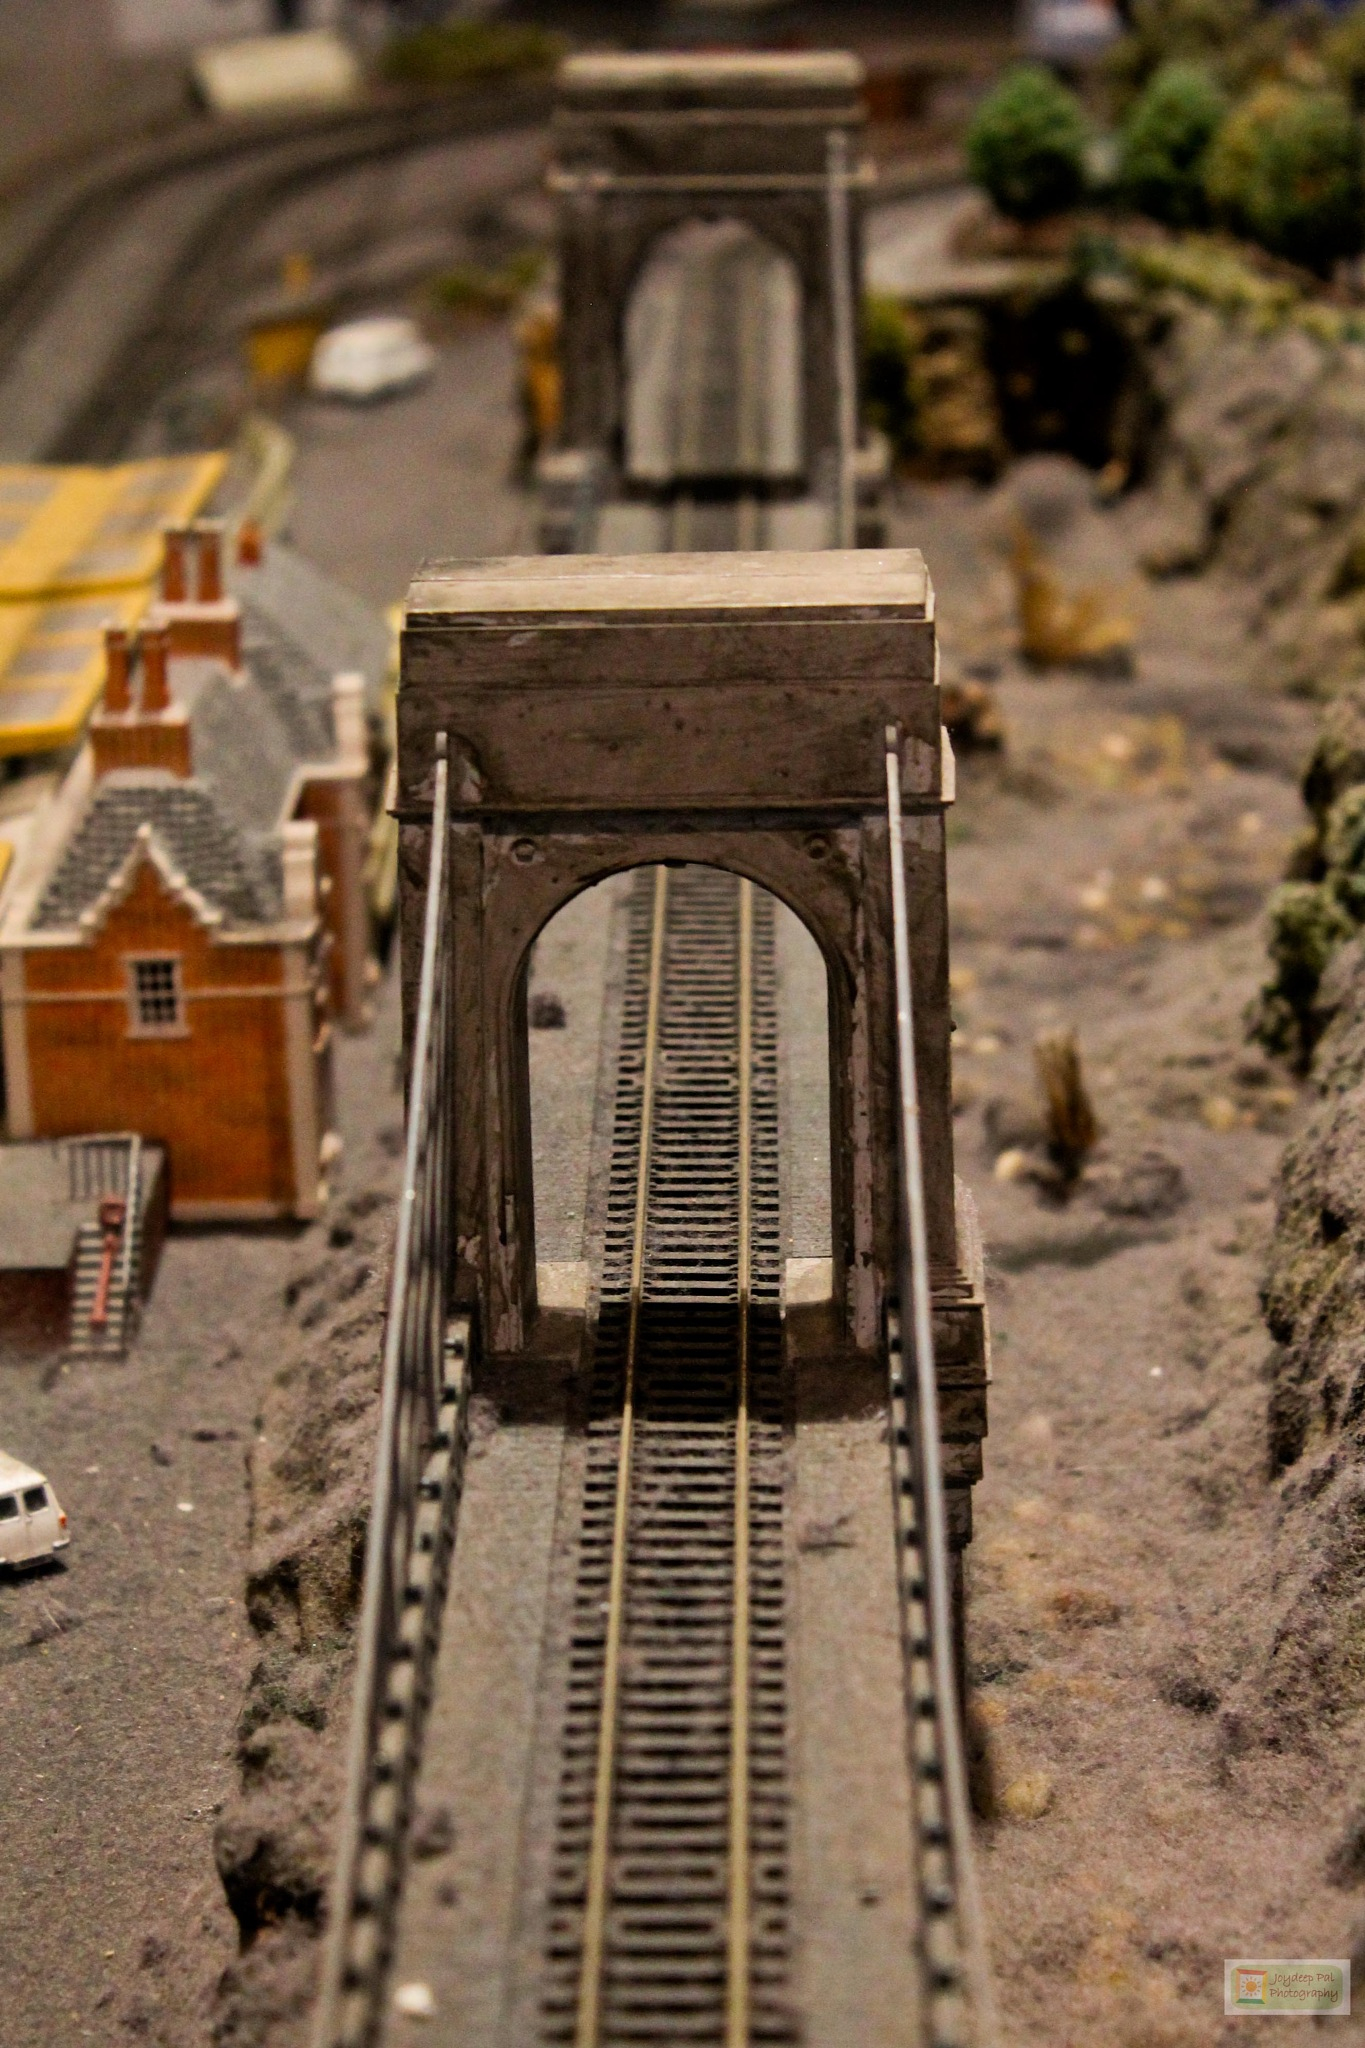 Miniature Rail by Joydeep Pal